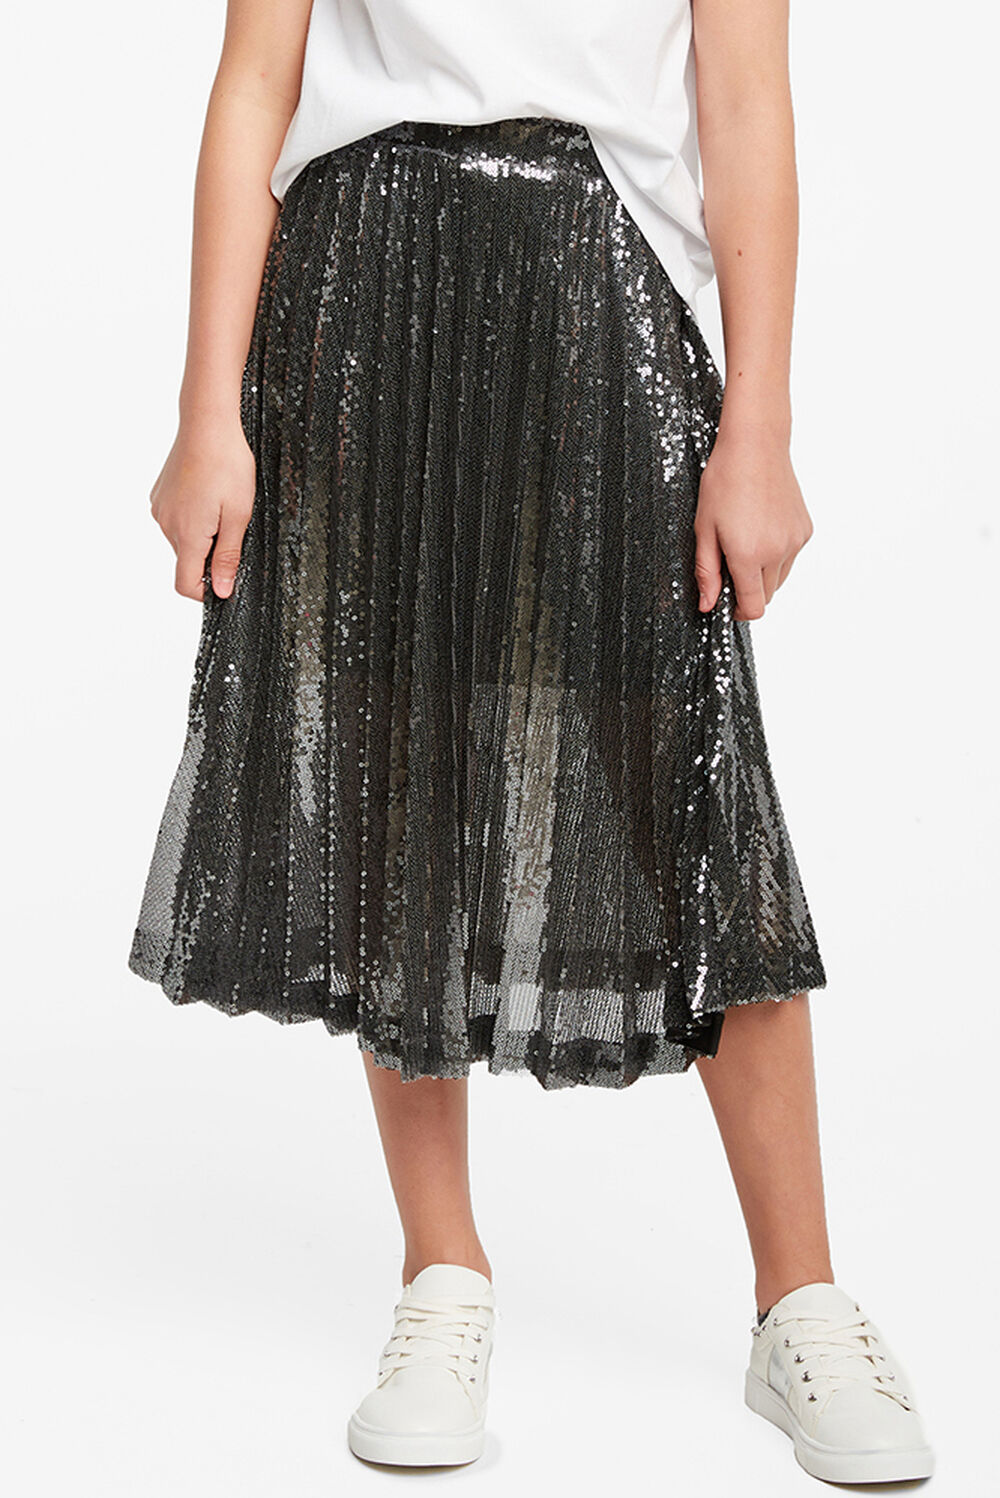 IVA SEQUIN PLEAT SKIRT in colour GLACIER GRAY